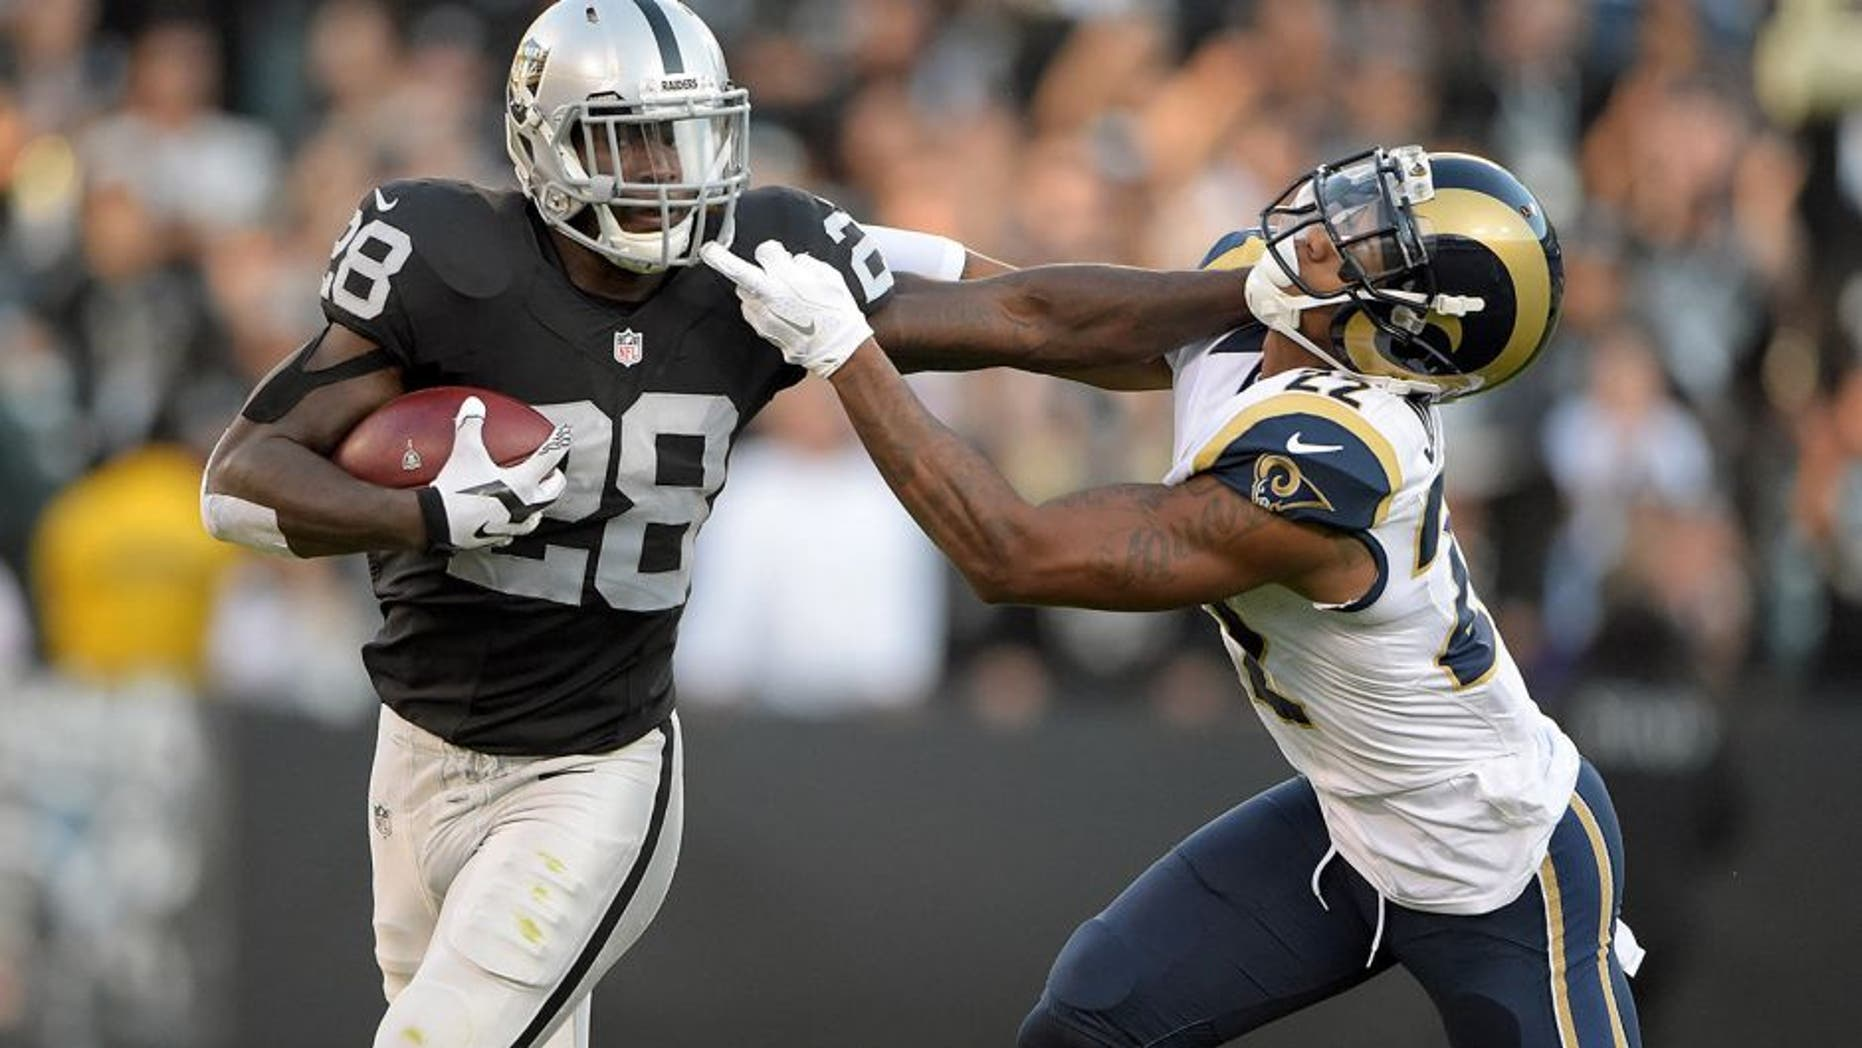 Aug 14, 2015; Oakland, CA, USA; Oakland Raiders running back Latavius Murray (28) stiff arms St. Louis Rams corneramback Tremaine Johnson (22) in a preseason NFL football game at O.co Coliseum. Mandatory Credit: Kirby Lee-USA TODAY Sports